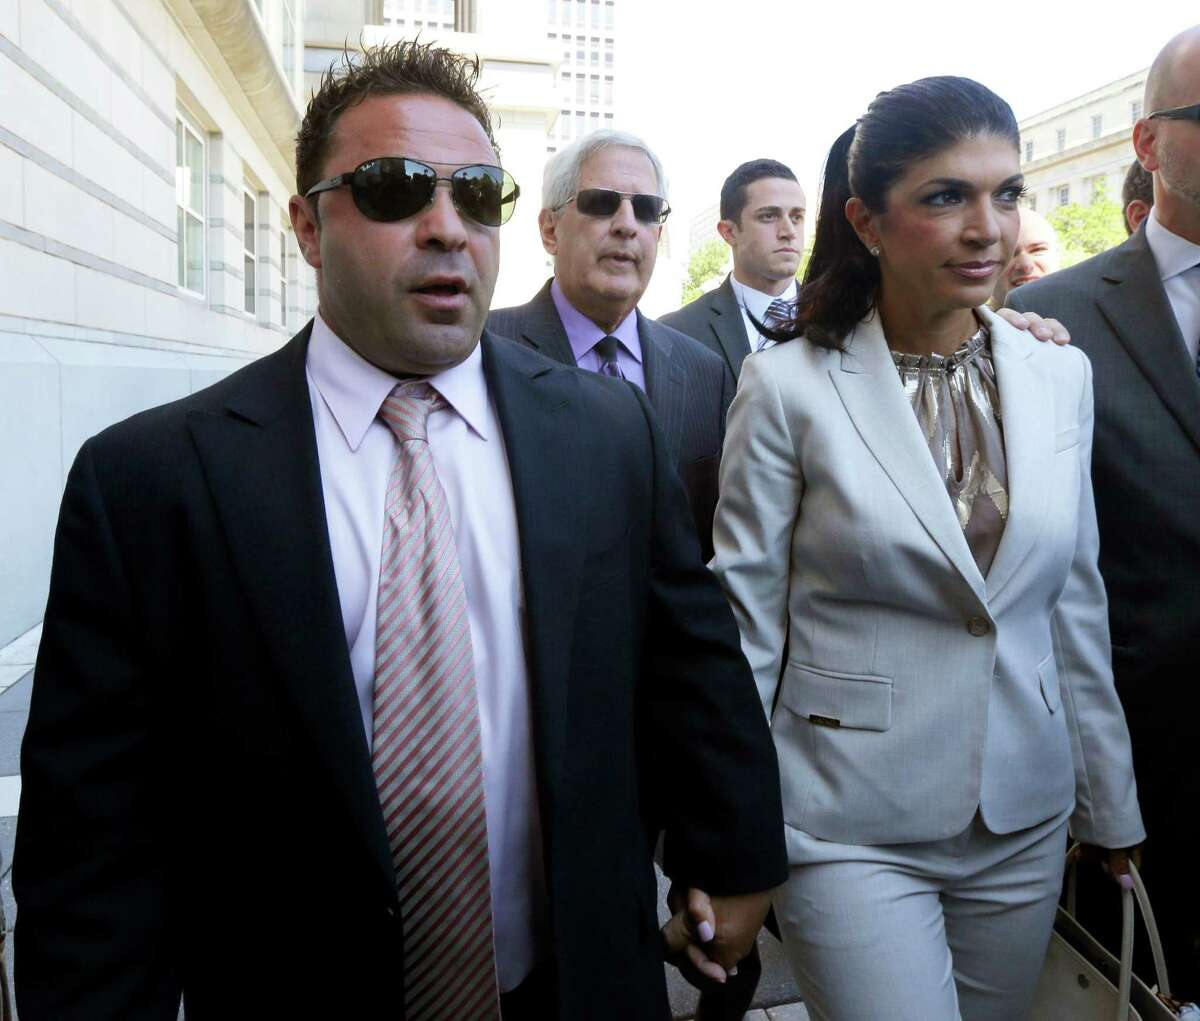 """FILE - In this July 30, 2013 file photo, ?""""The Real Housewives of New Jersey?"""" stars Giuseppe """"Joe"""" Giudice, left, and his wife, Teresa Giudice, of Montville Township, N.J., walk out of Martin Luther King Jr. Courthouse after an appearance in Newark, N.J. The Giudices are facing additional fraud charges as they were each indicted Monday, Nov. 18, 2013, on one count of bank fraud and one count of loan application fraud. Monday's charges are in addition to a 39-count indictment handed down in July, charging the couple with conspiracy to commit mail and wire fraud, bank fraud, making false statements on loan applications and bankruptcy fraud. (AP Photo/Julio Cortez, File) ORG XMIT: NY118"""